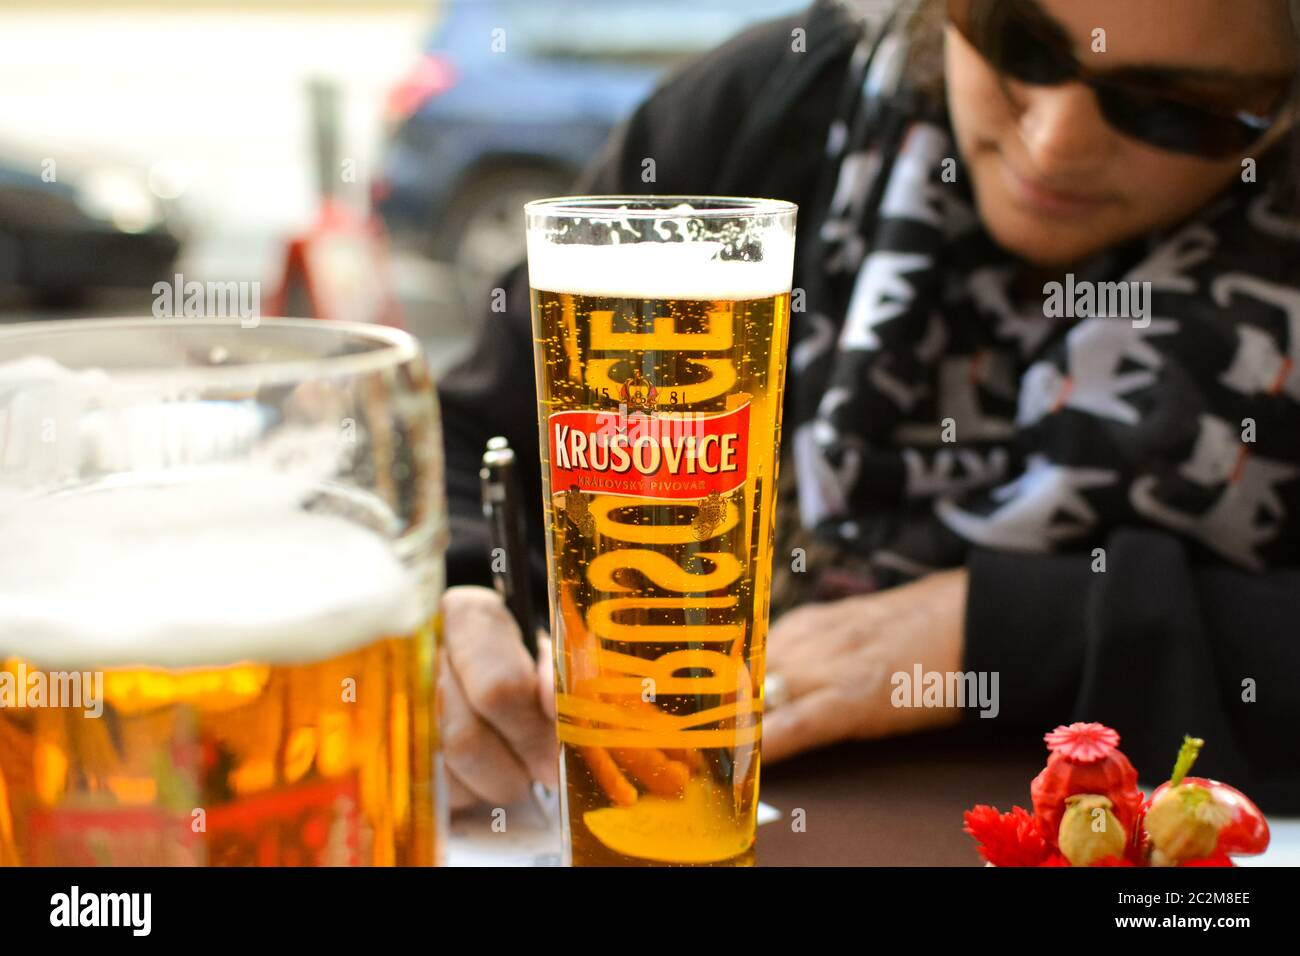 A woman wearing dark glasses and drinking a beer fills out postcards at a sidewalk cafe in Budapest Hungary. Stock Photo